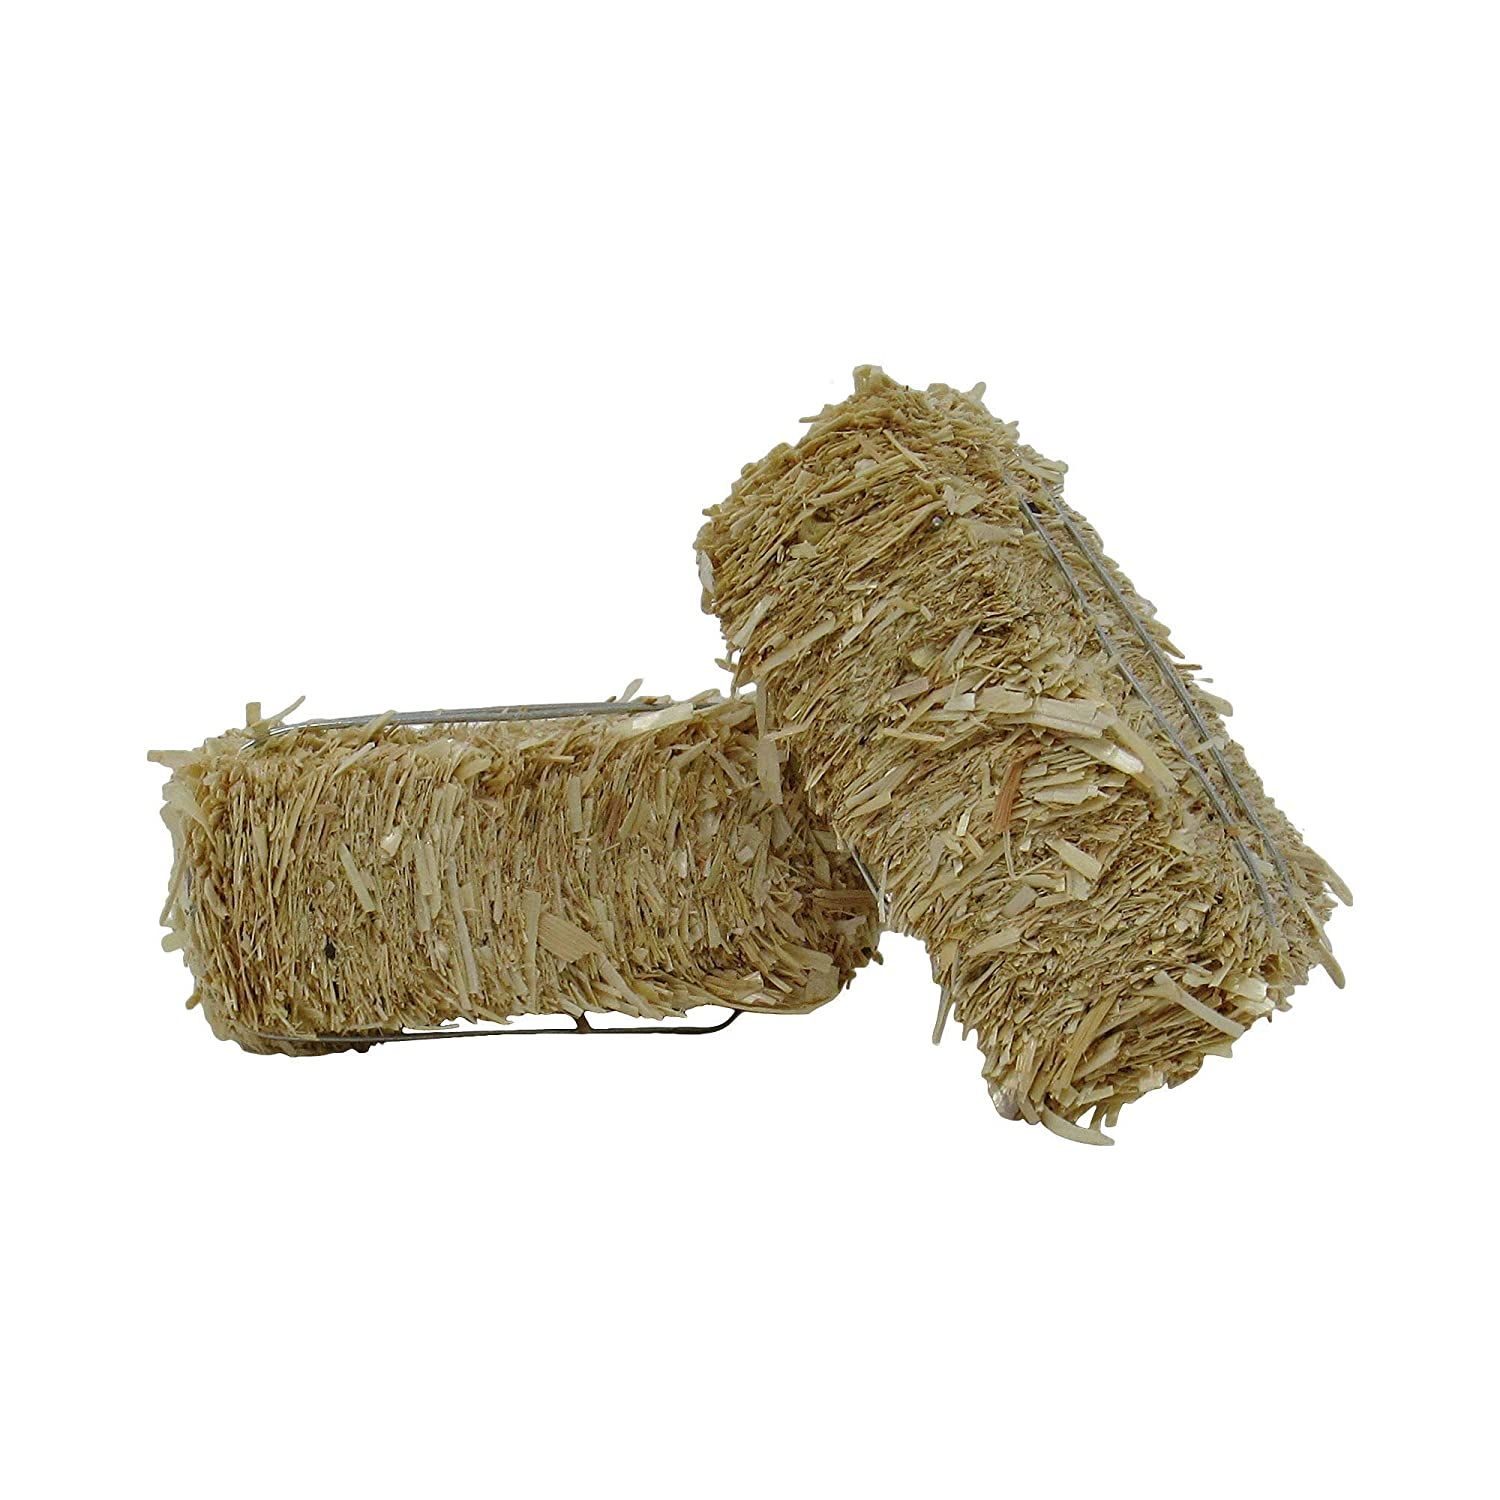 Embellishing and Creating Package of 2 Ultra Mini Hay Bales Made of Real Dried Straw for Crafting